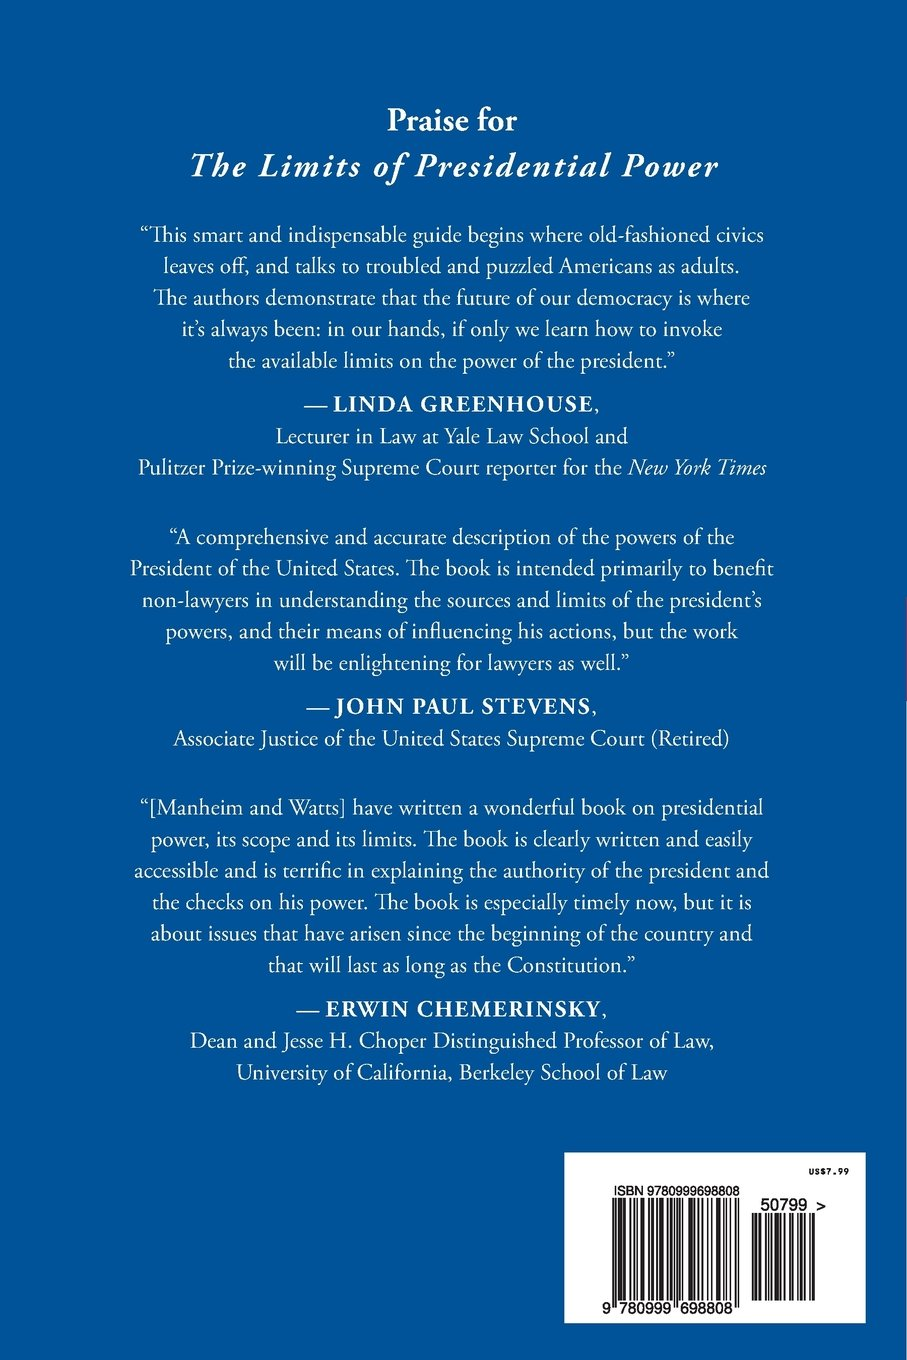 The Limits of Presidential Power: A Citizen's Guide to the Law: Lisa  Manheim, Kathryn Watts: 9780999698808: Amazon.com: Books